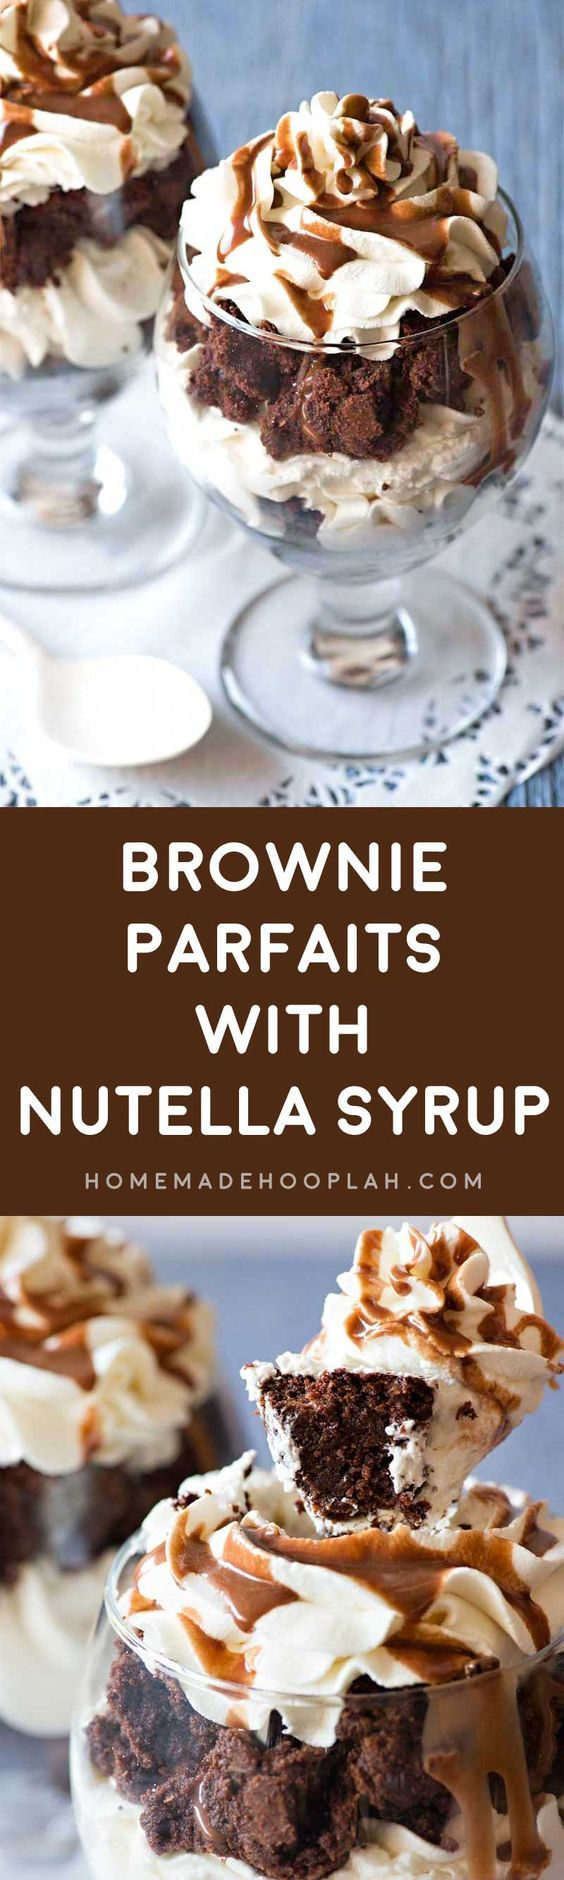 Brownie Parfaits with Nutella Syrup! Fresh baked brownies, homemade whipped cream, and tasty Nutella syrup come together to make these sinfully delicious brownie parfaits! | HomemadeHooplah.com